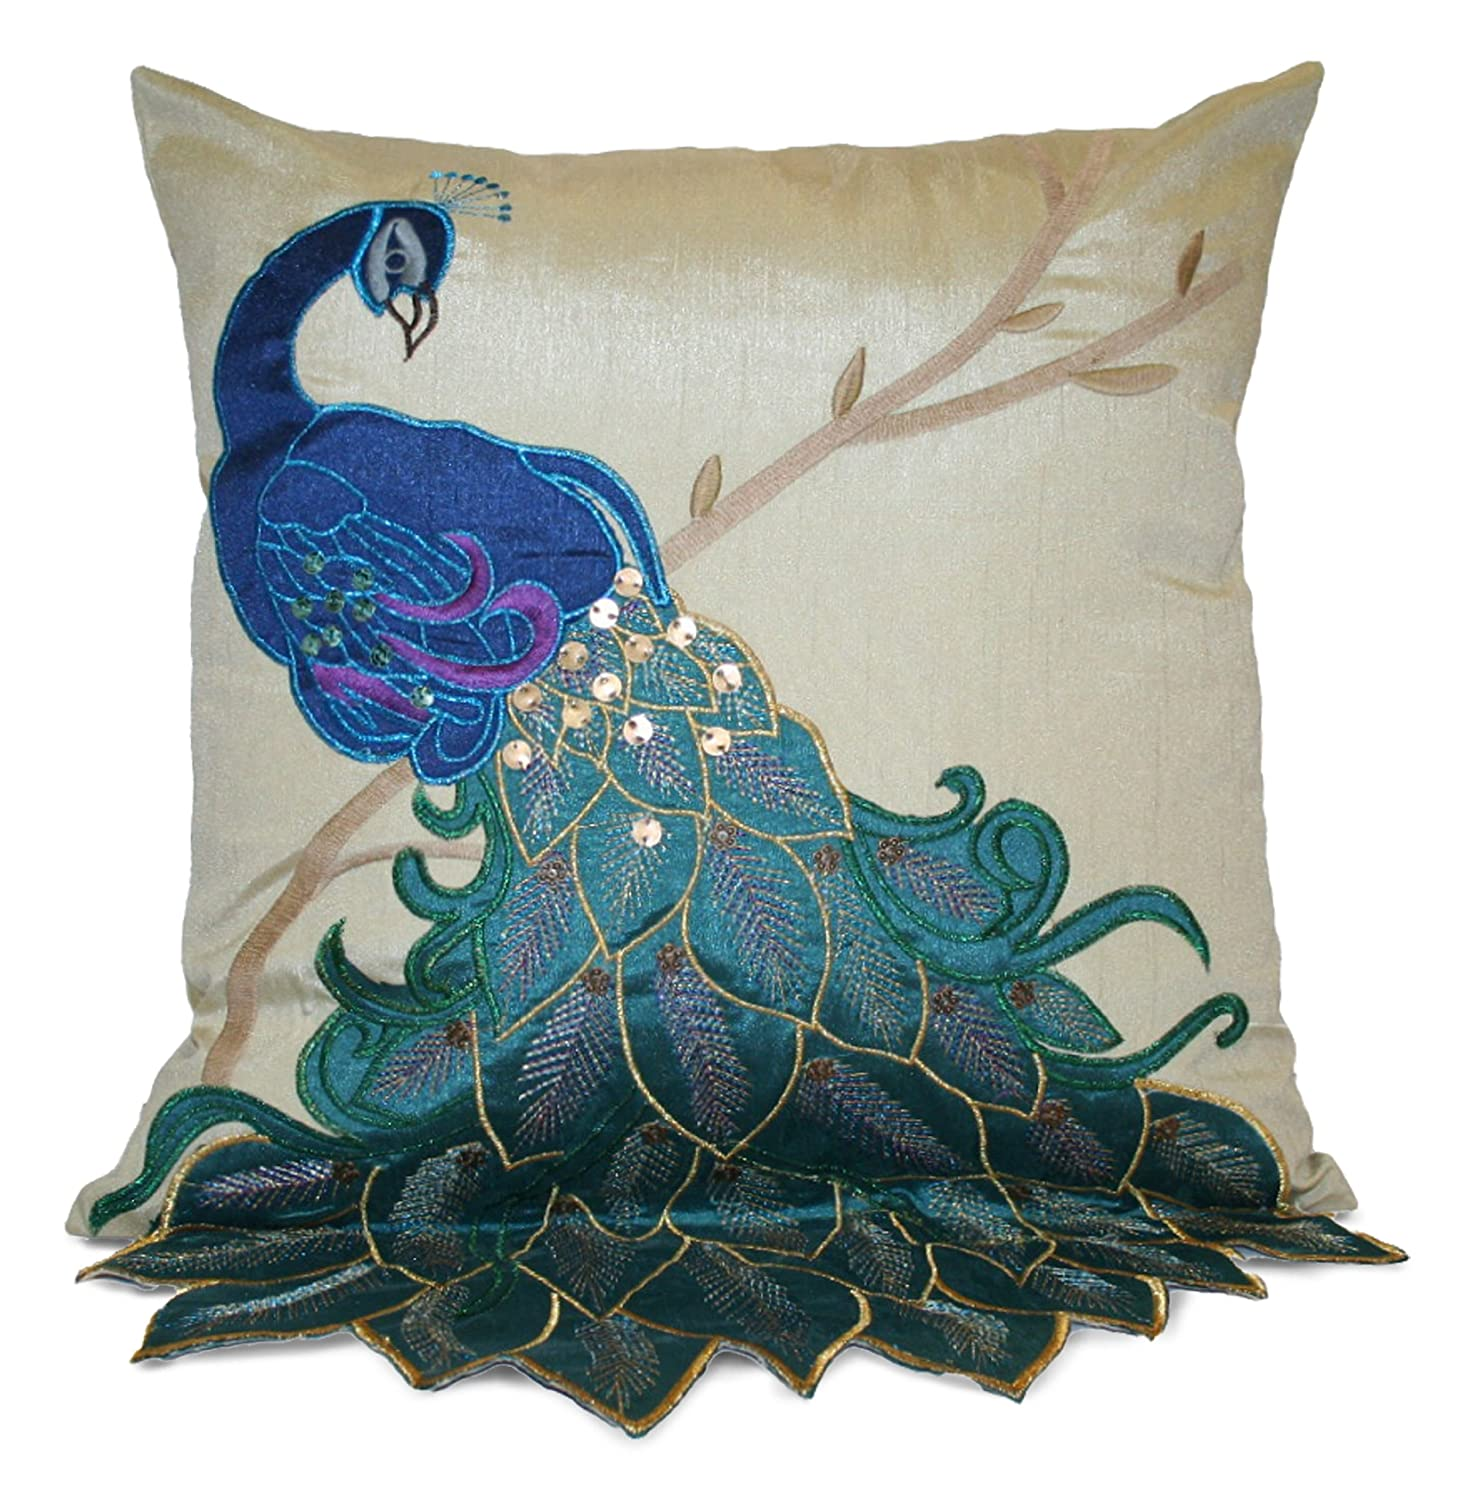 Beautiful Peacock Pillows And Bedding Sets For Your Home